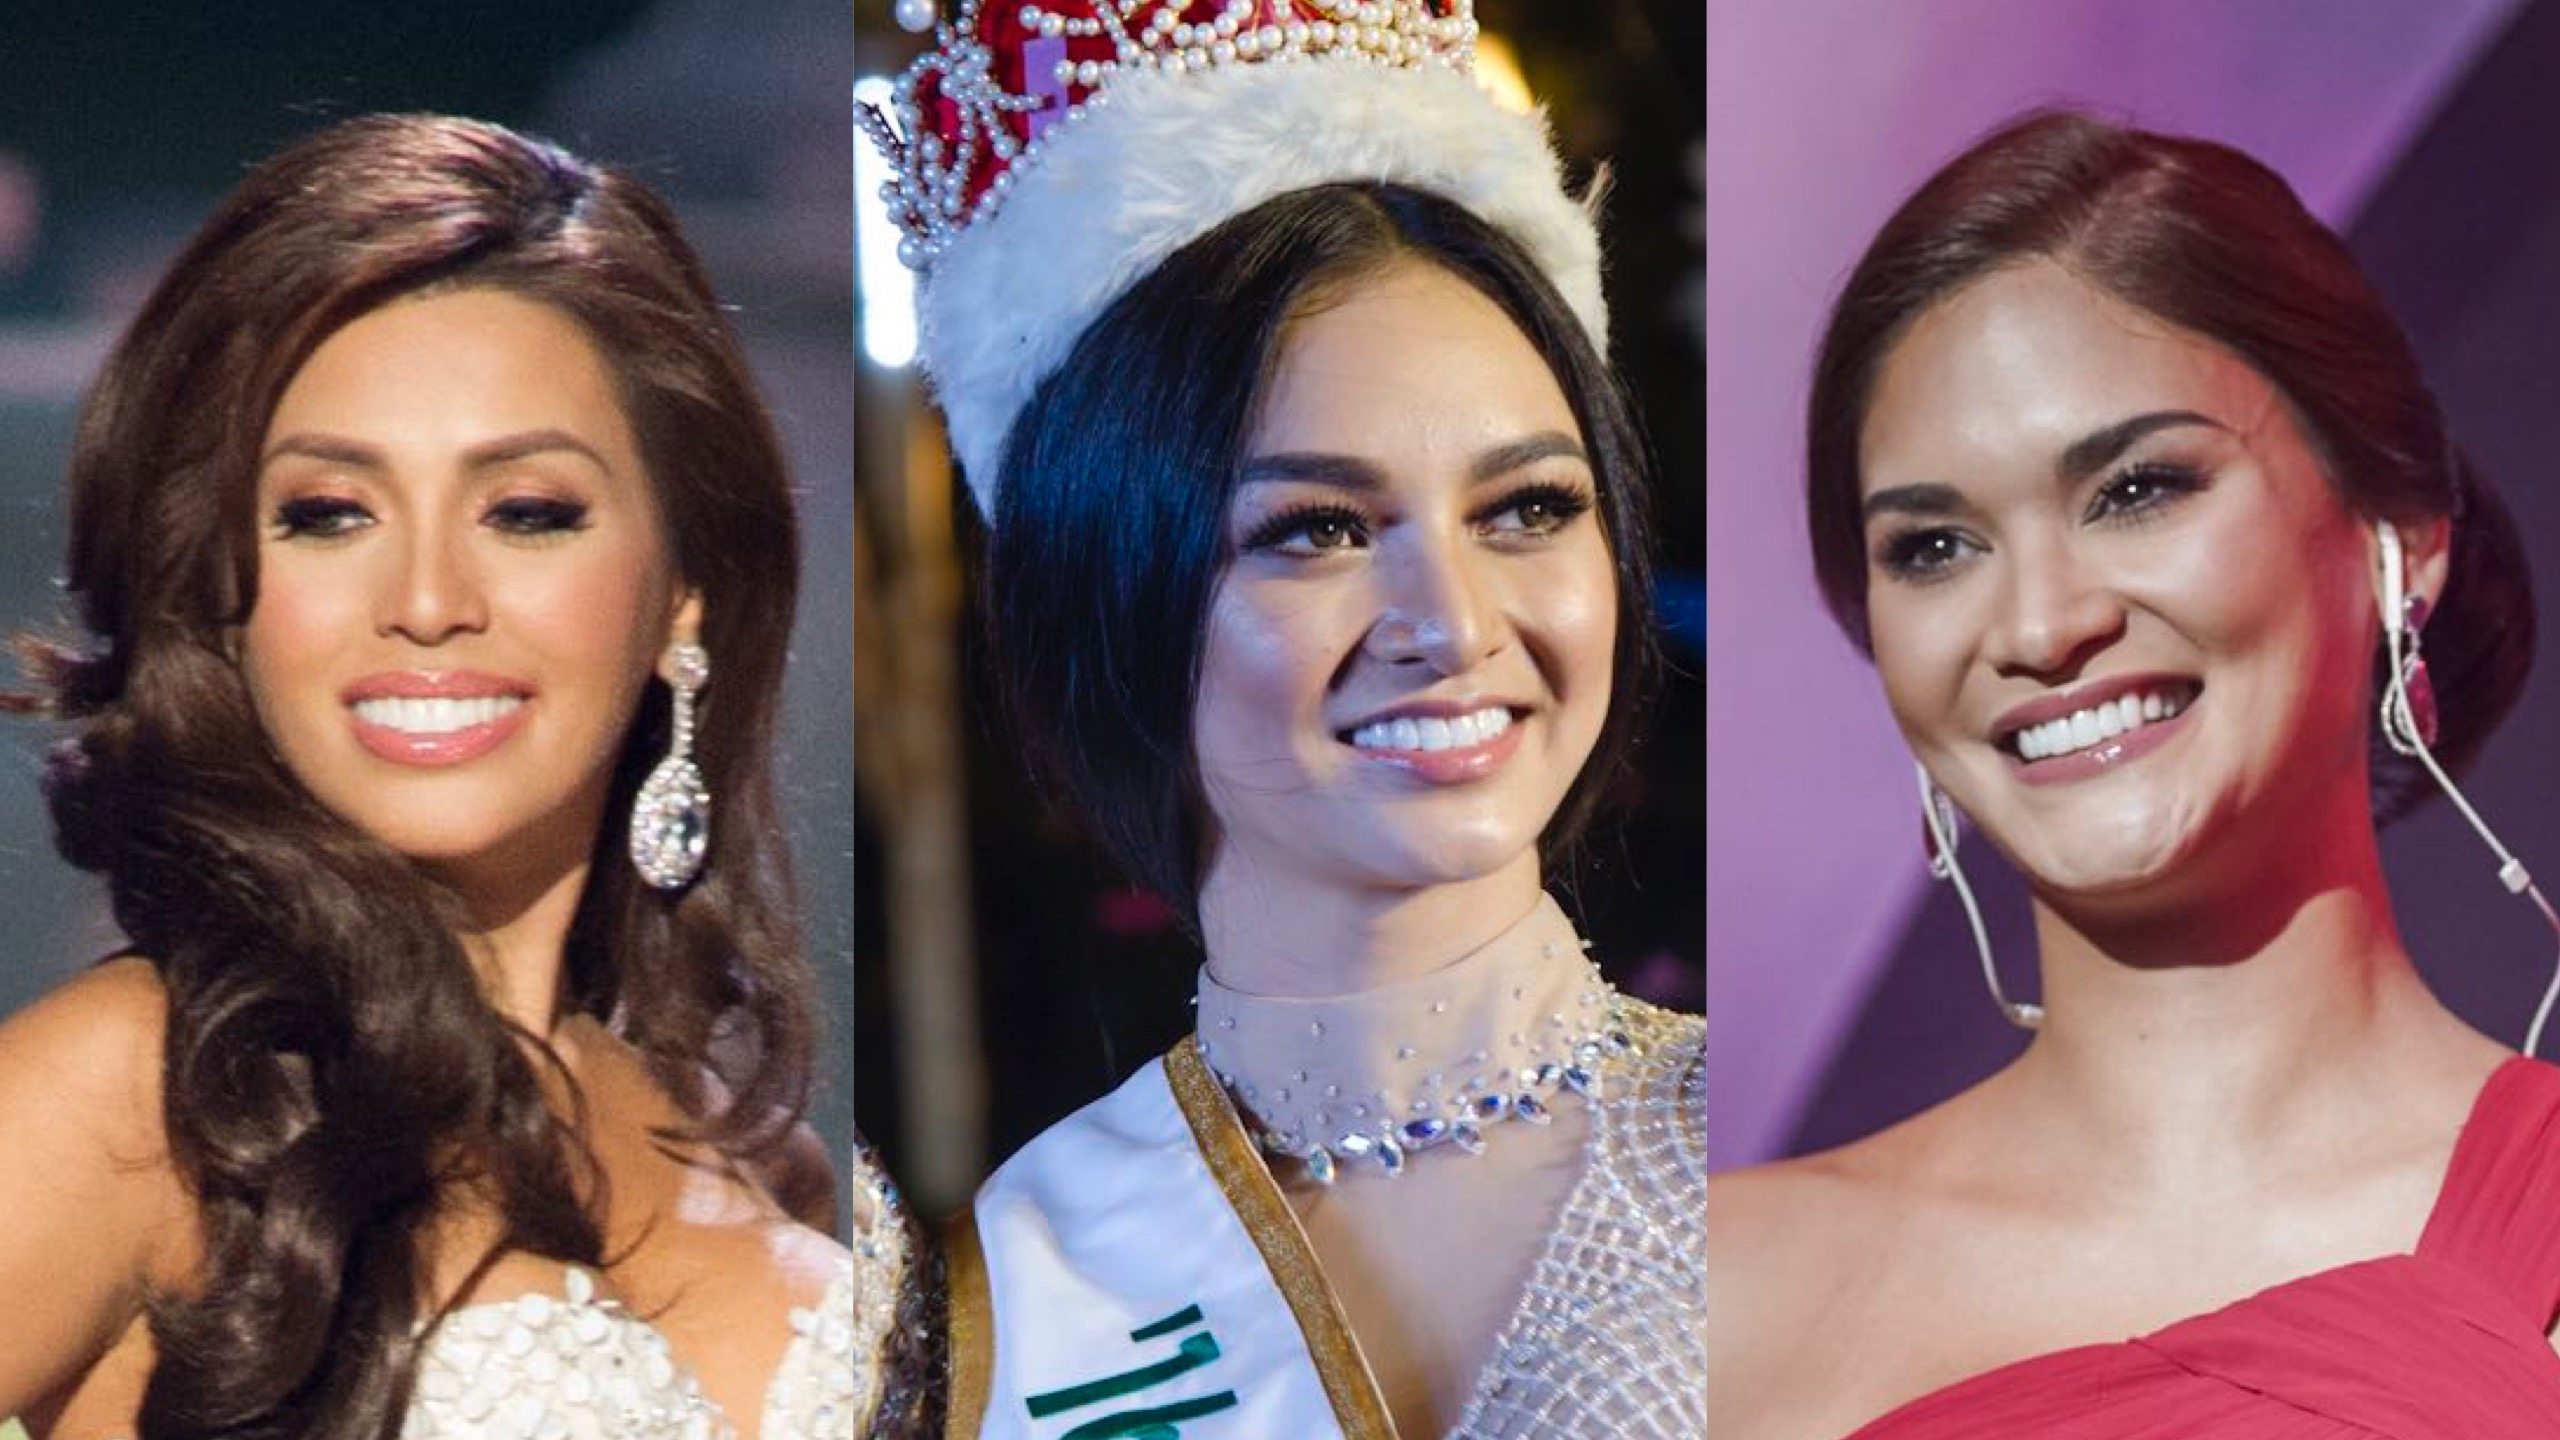 Winning a beauty pageant: does age matter?